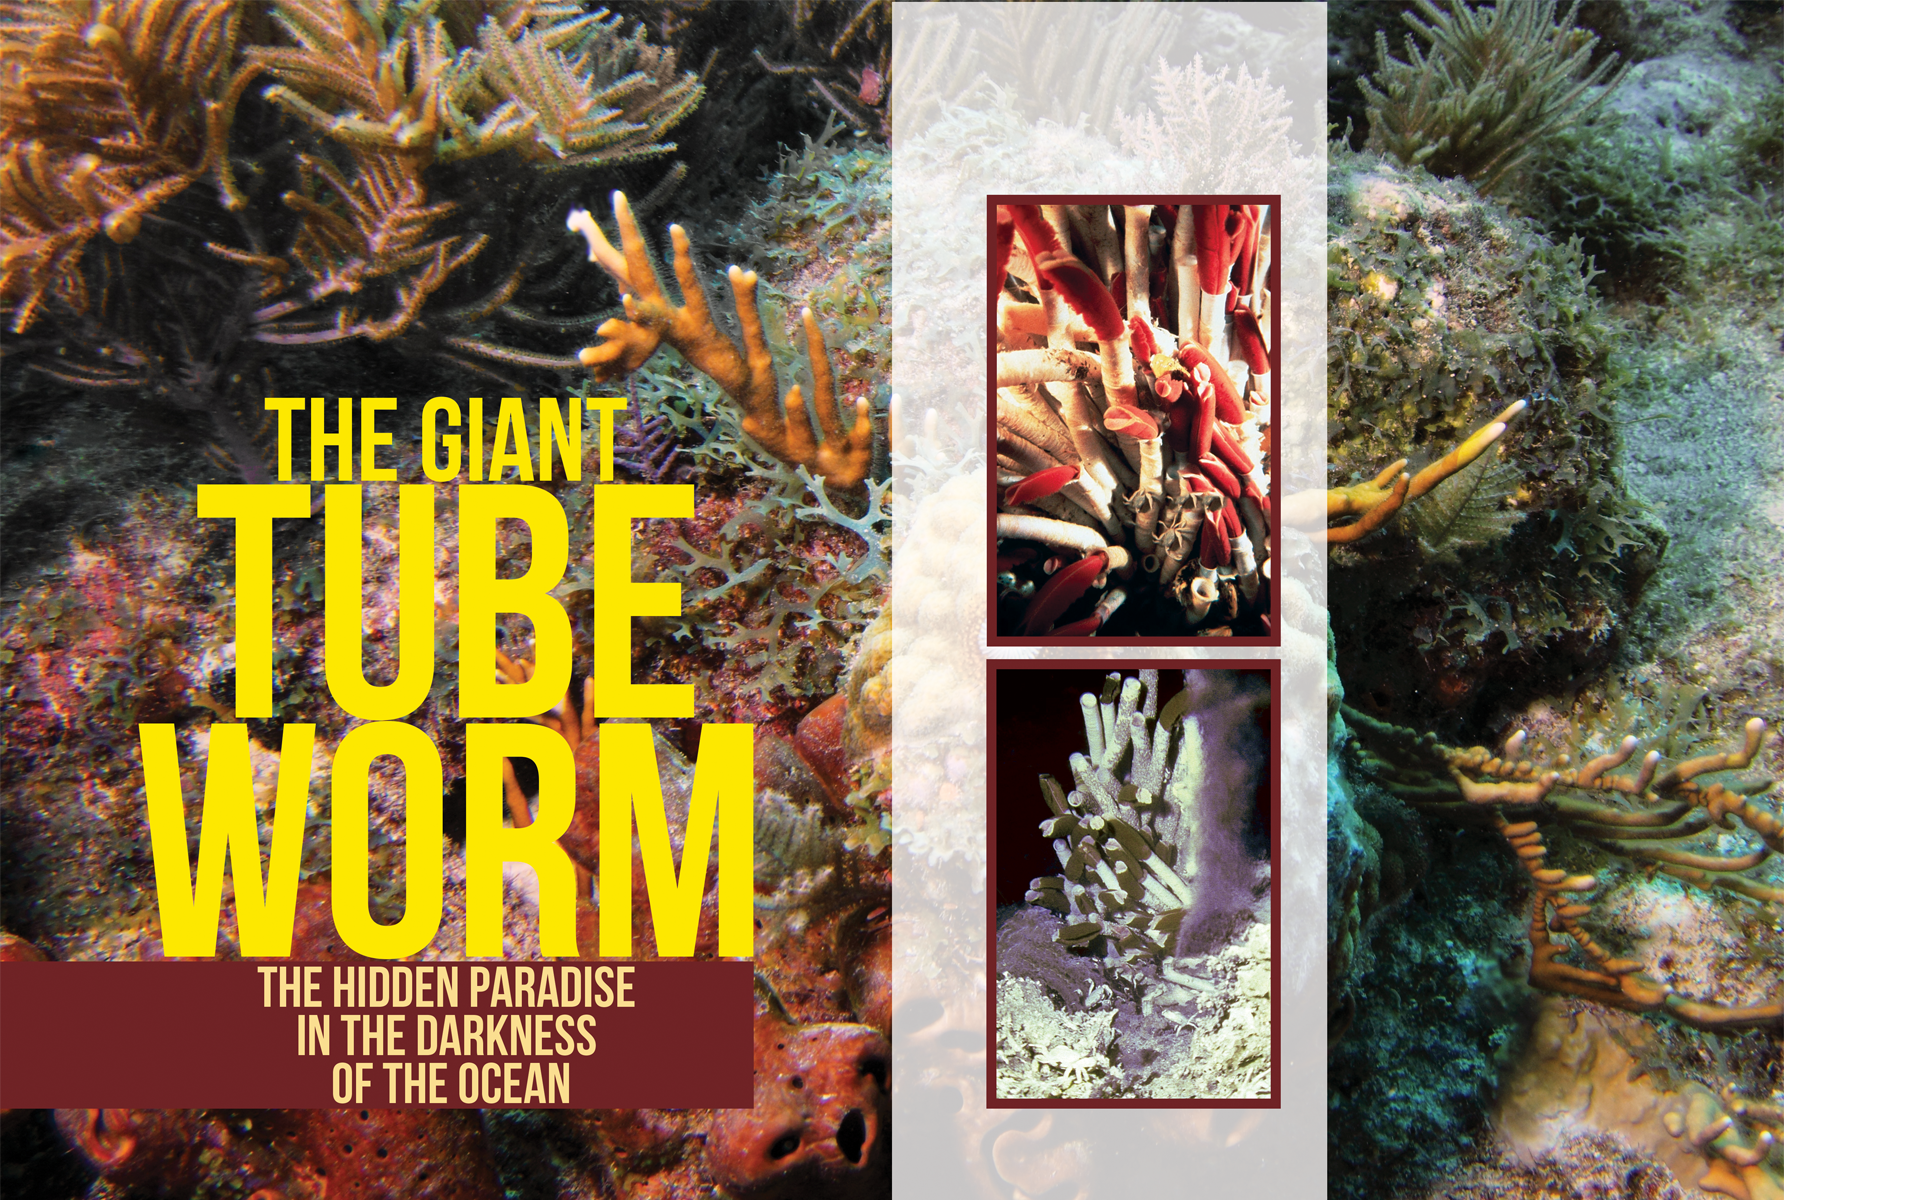 The Giant Tube Worm: The Hidden Paradise in the Darkness of the Ocean